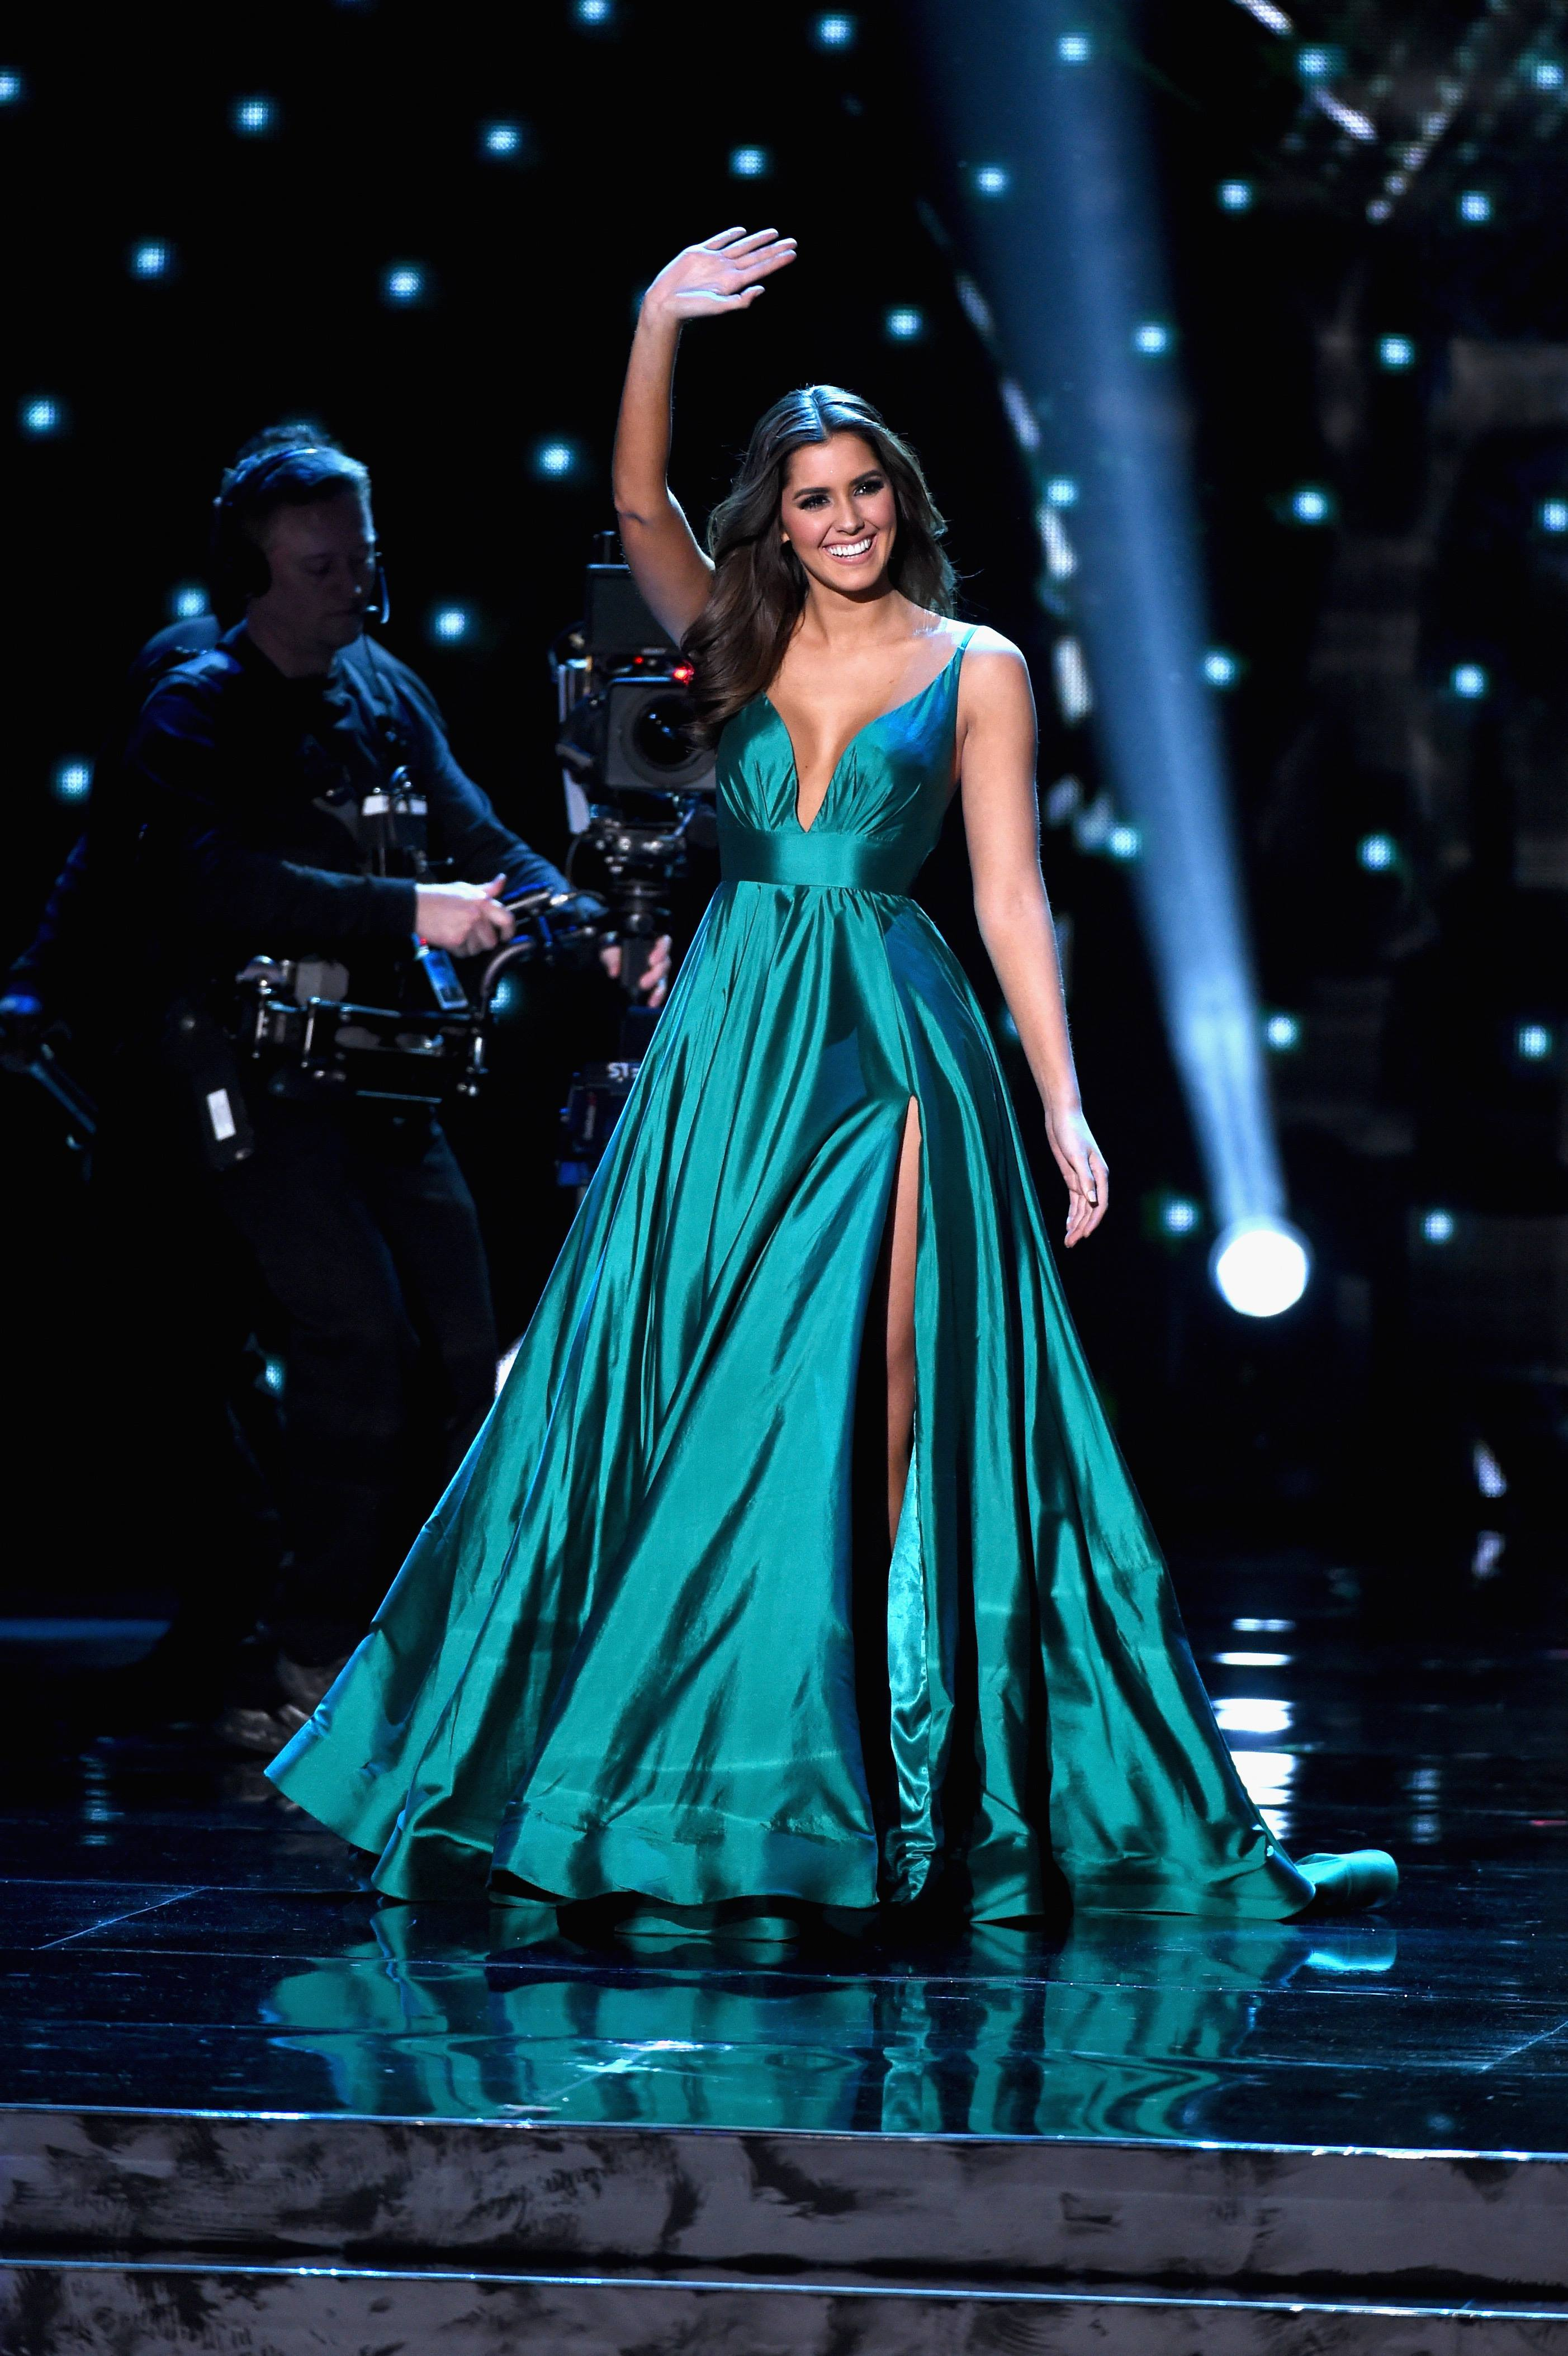 Prizes for miss universe 2018 casamento